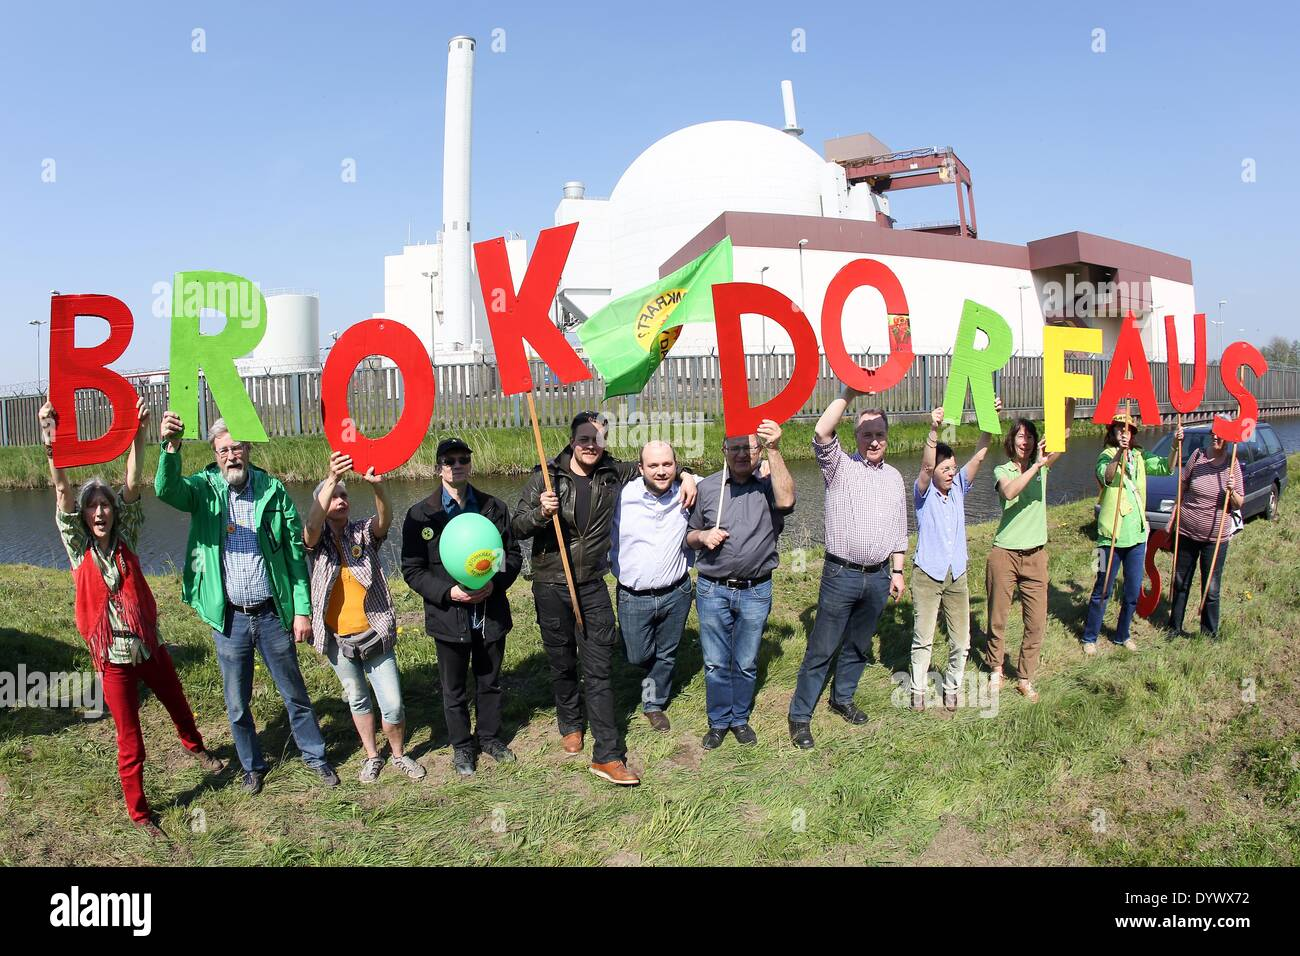 Brokdorf, Germany. 26th Apr, 2014. Protesters, among them Rebecca Harms (front L), top candidate of Alliance '90/The Greens, form the words 'save the energy transition' with colourful letters in front of the nuclear power plant in Brokdorf, Germany, 26 April 2014. Several hundred people commemorate the 28th anniversary of the Chernobyl disaster and demand the closing of the Brokdorf nuclear plant. Photo: BODO MARKS/dpa/Alamy Live News - Stock Image